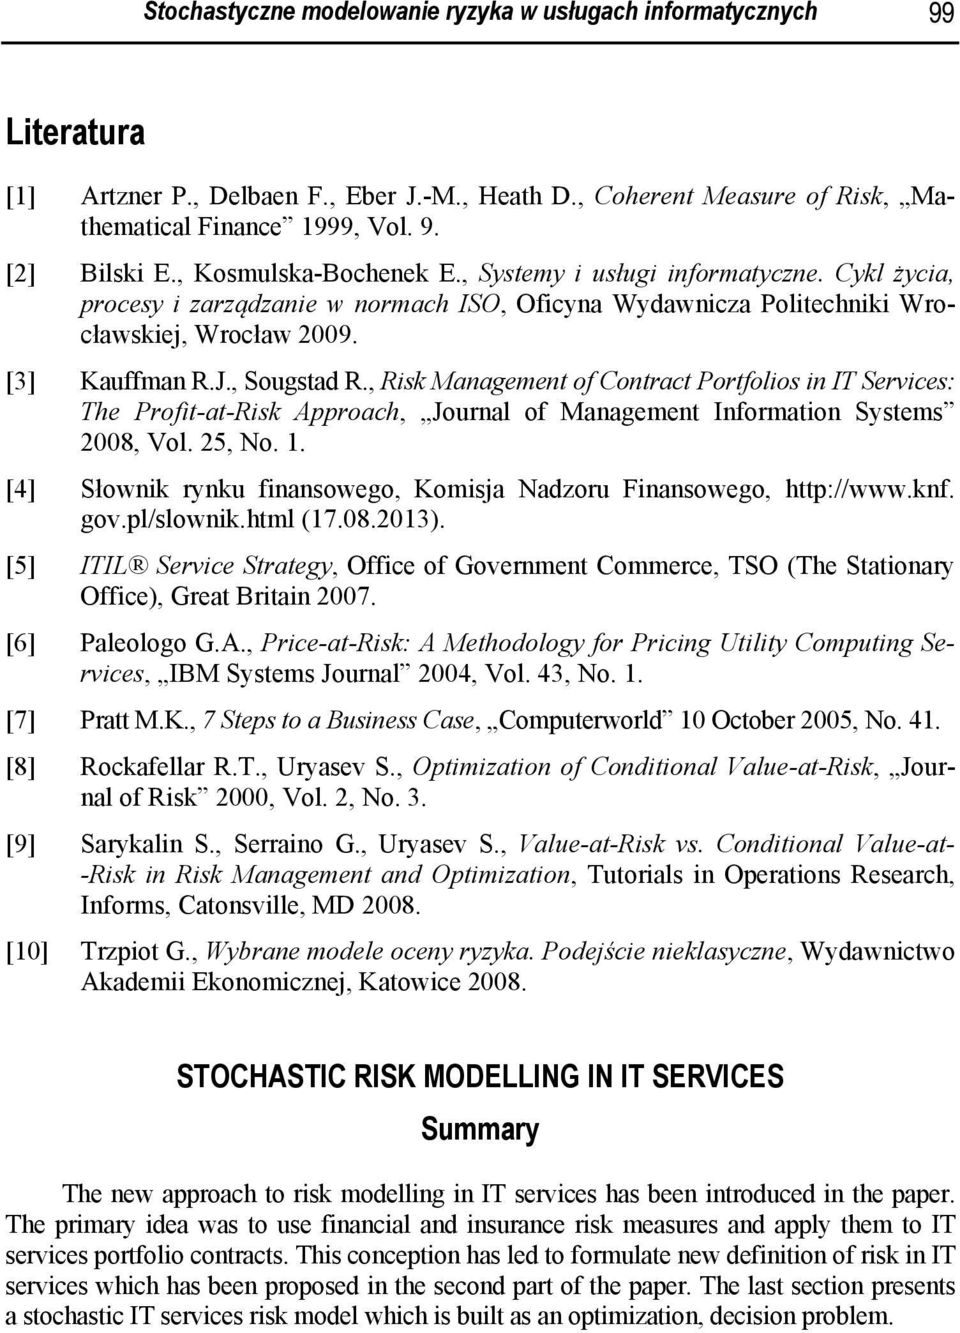 , Risk Management of Contract Portfolios in IT Services: The Profit-at-Risk Approach, Journal of Management Information Systems 2008, Vol. 25, No. 1.